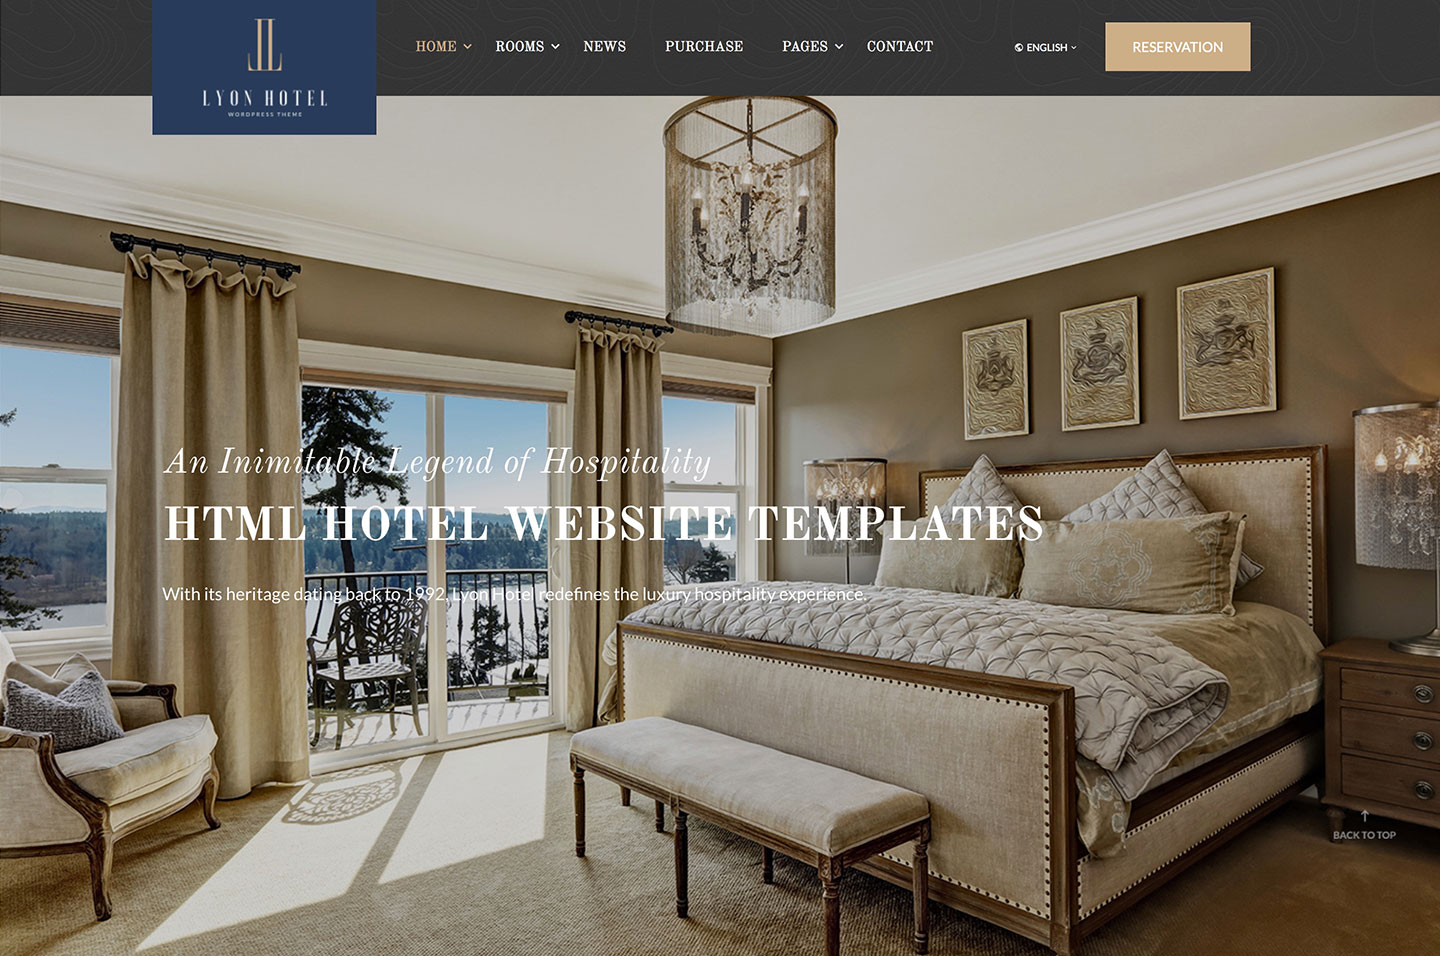 Top 25 Hotel Website Templates For Luxury Hotel, Resort And Hostel Booking Sites 2019